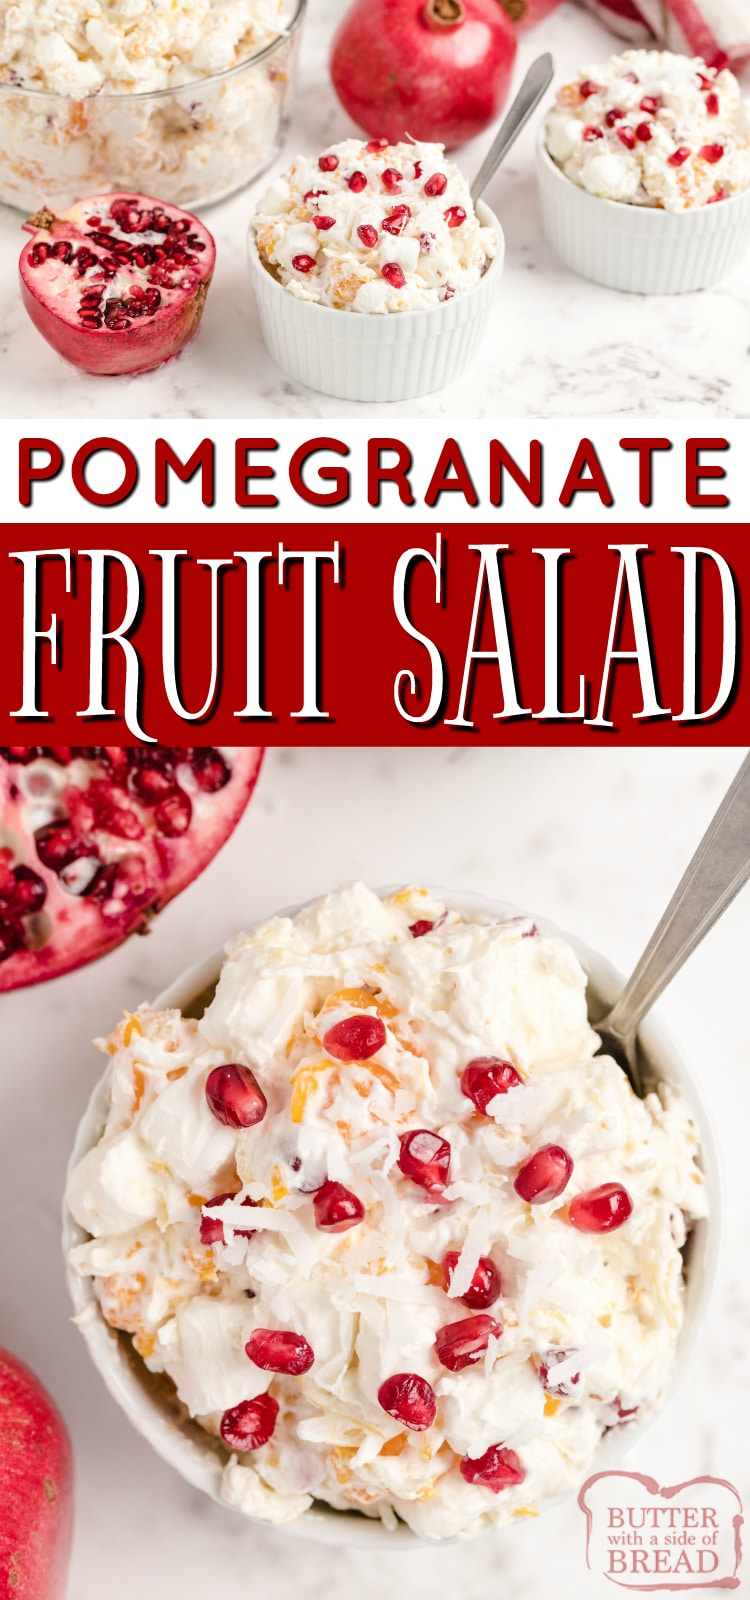 Creamy Pomegranate Fruit Salad made with pomegranates, fruit and marshmallows is sure to become a favorite holiday side dish! This simple fruit salad recipe is perfect for fall - it's been a family tradition to serve this for Thanksgiving for many years!